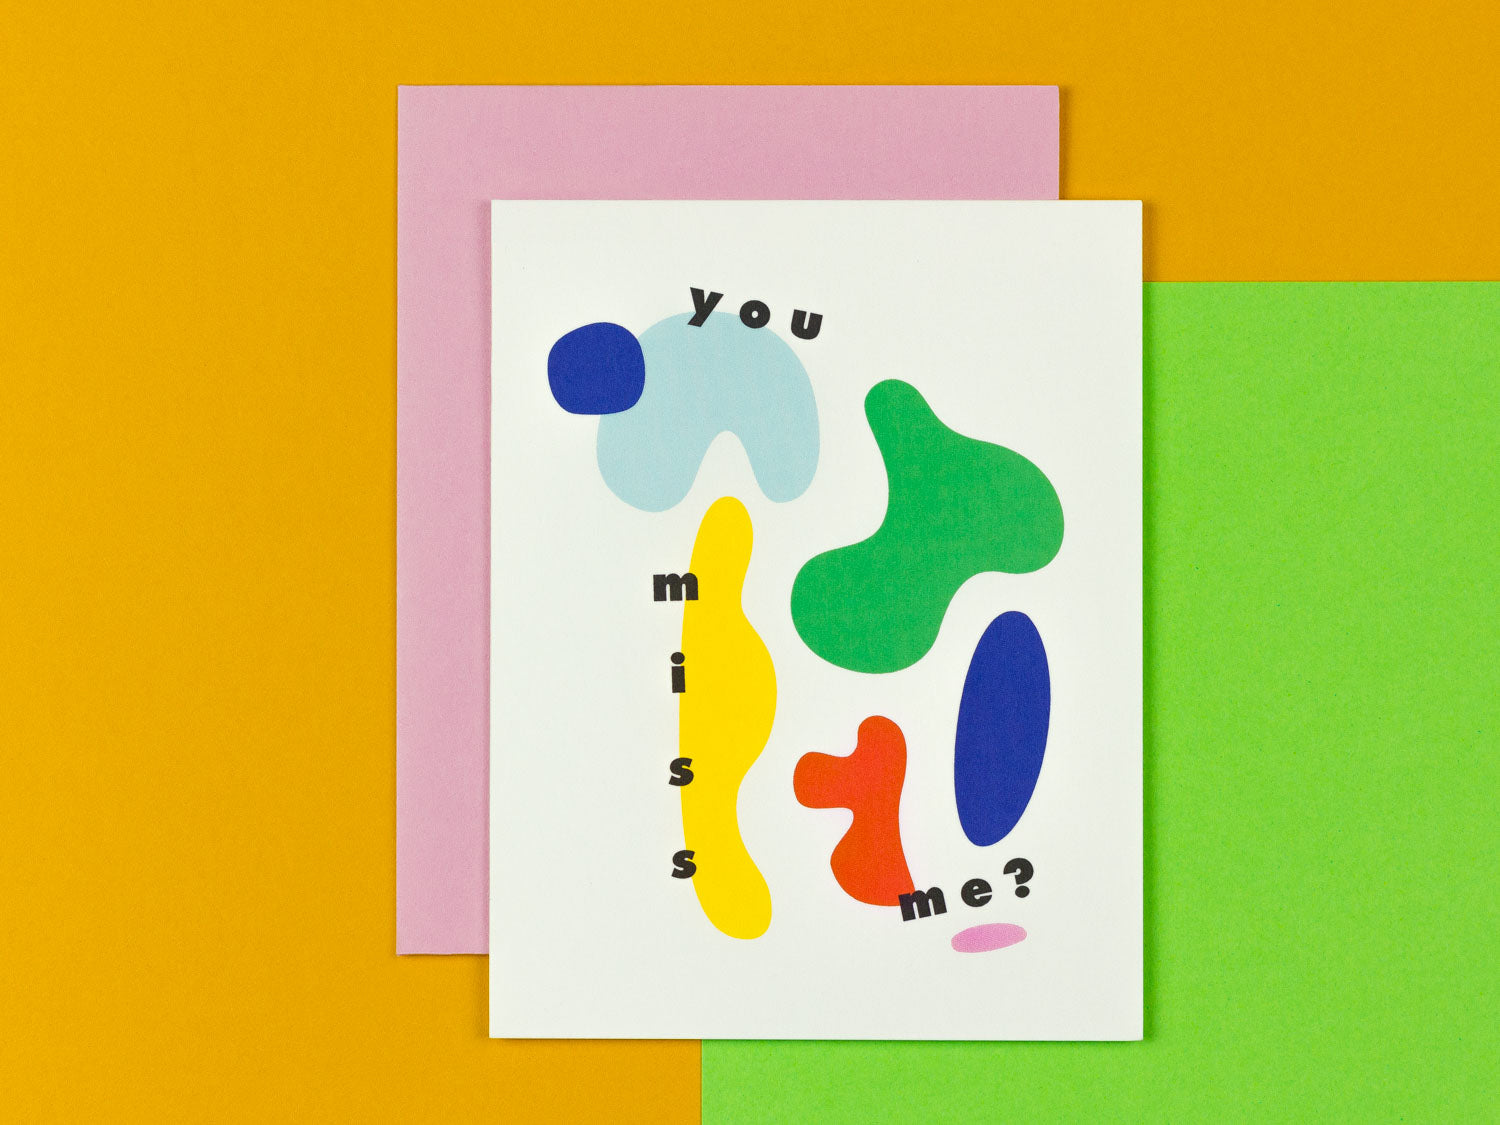 Thinking of you card with colorful abstract shapes by My Darlin' that reads You Miss Me? @mydarlin_bk